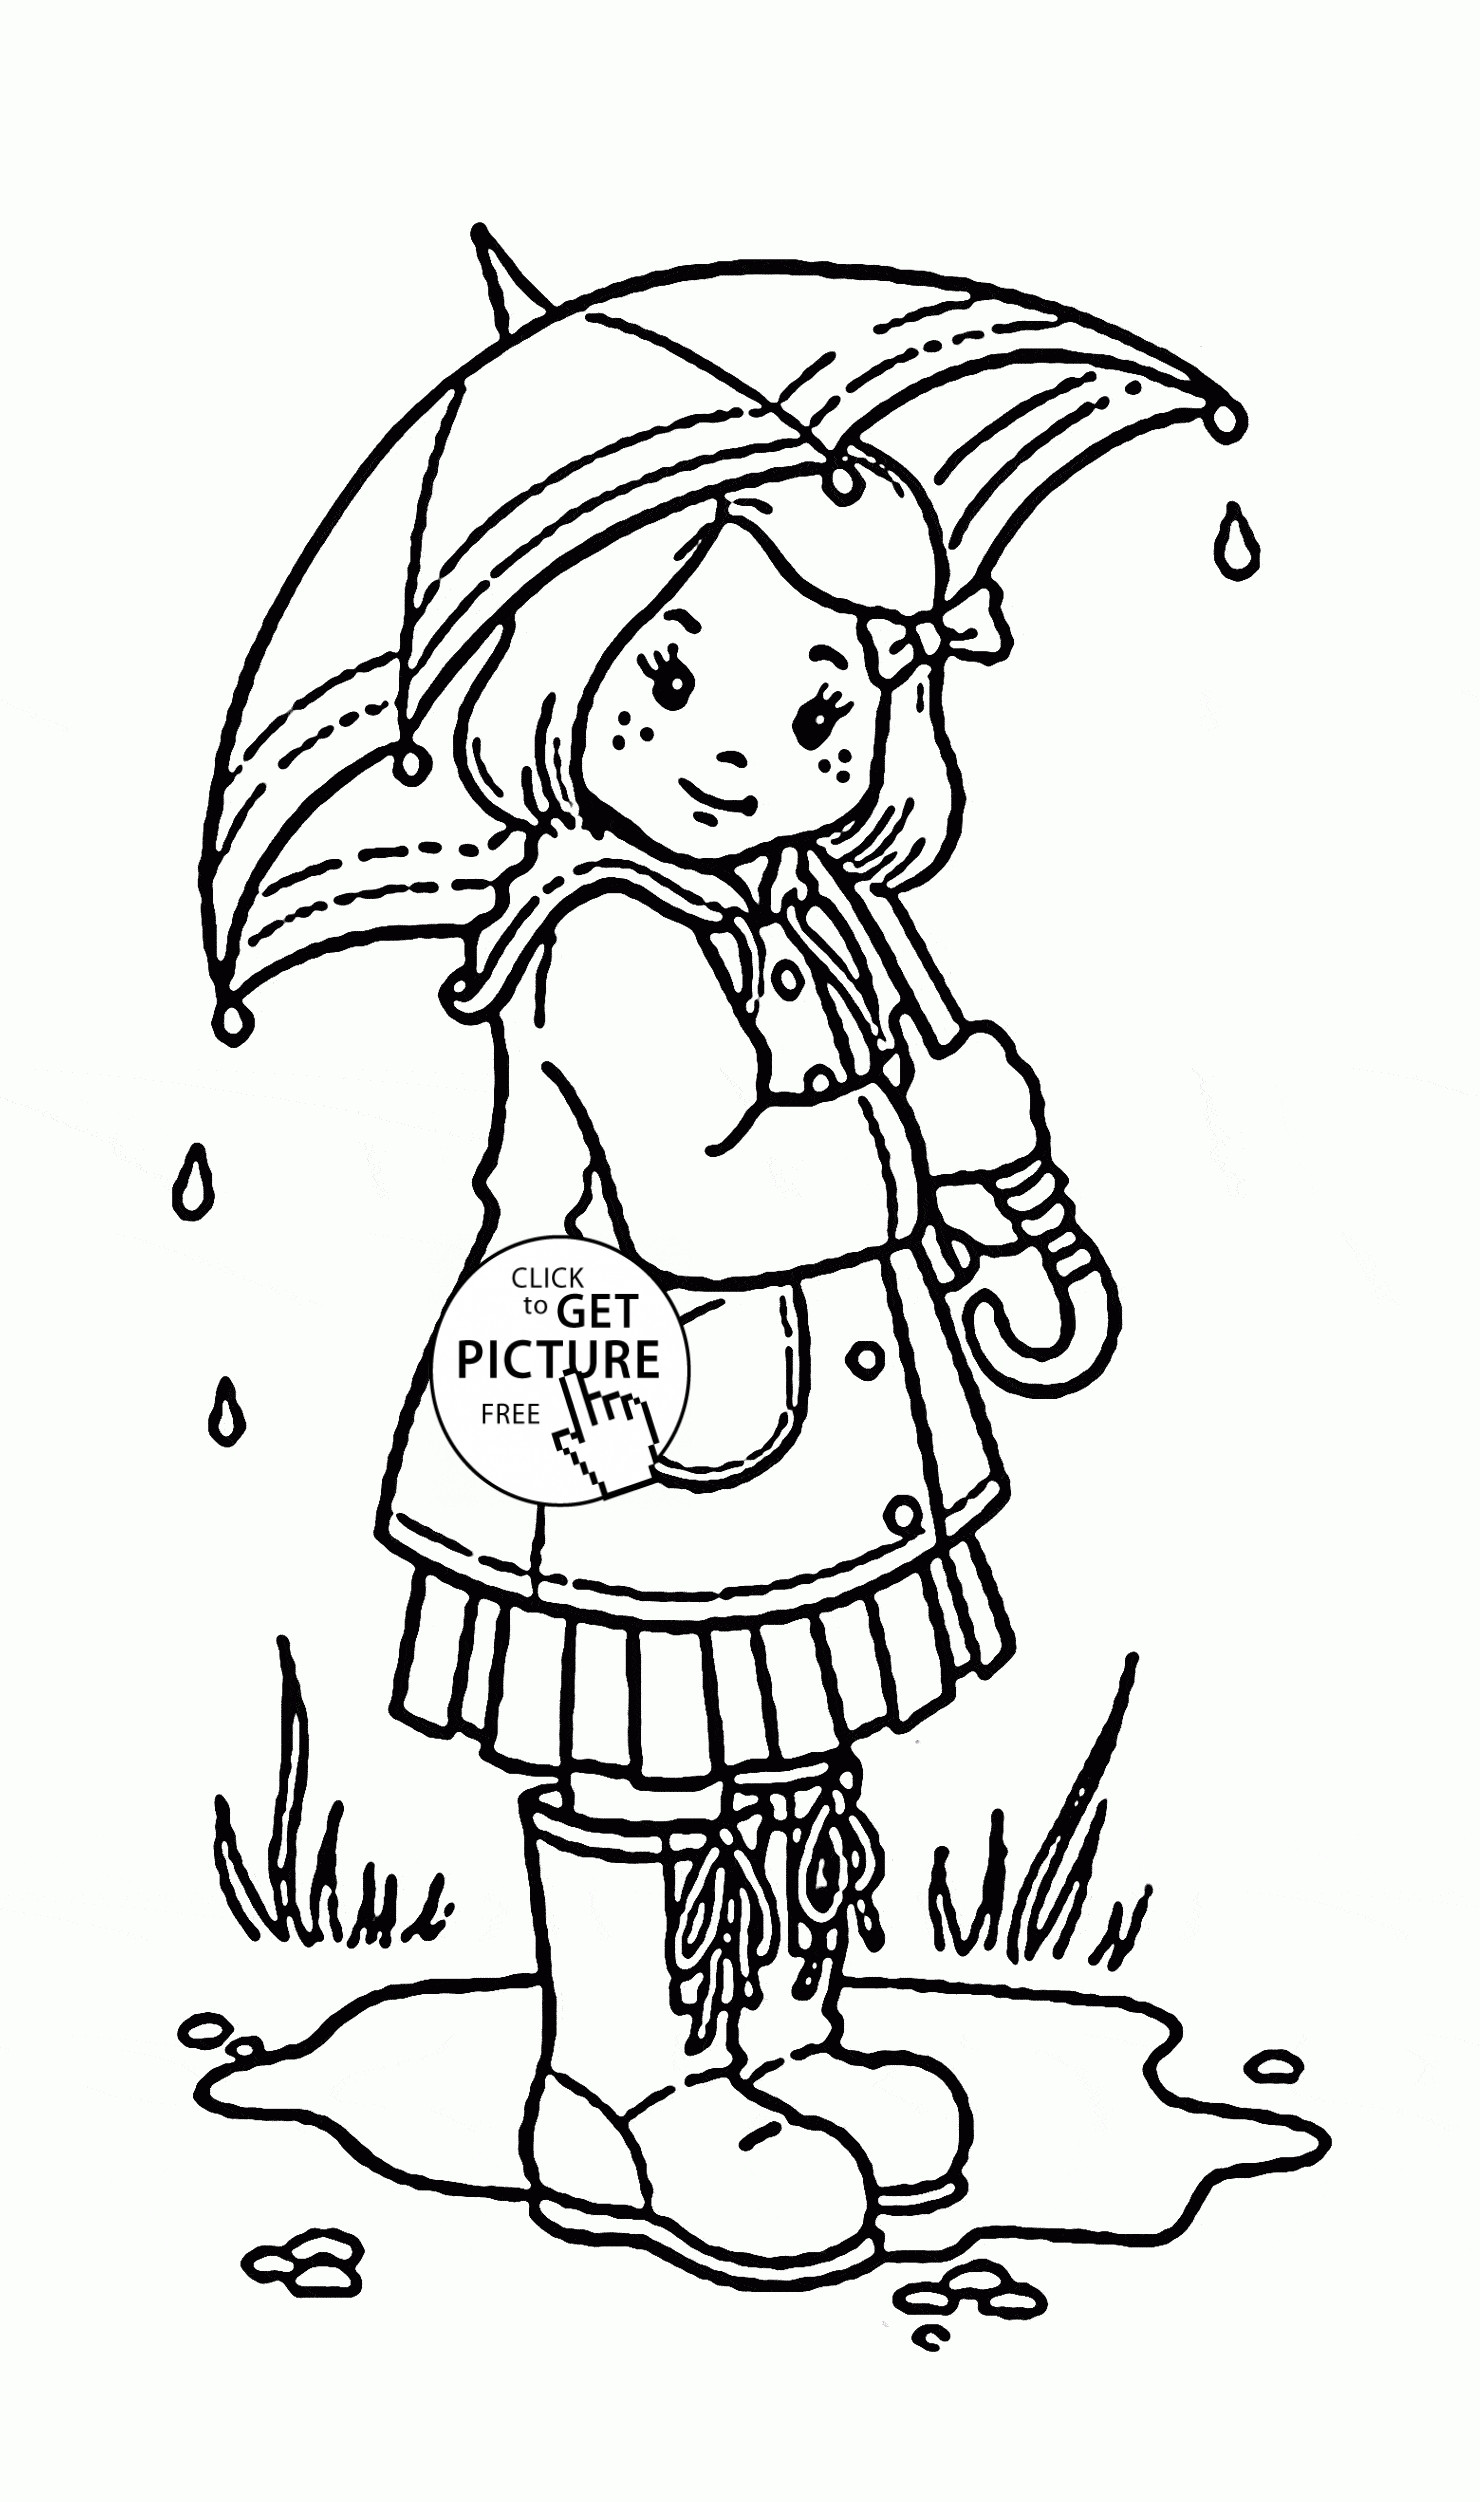 Girls Coloring Pages For Kids  Girl and Umbrella Coloring Page for Kids Spring Coloring